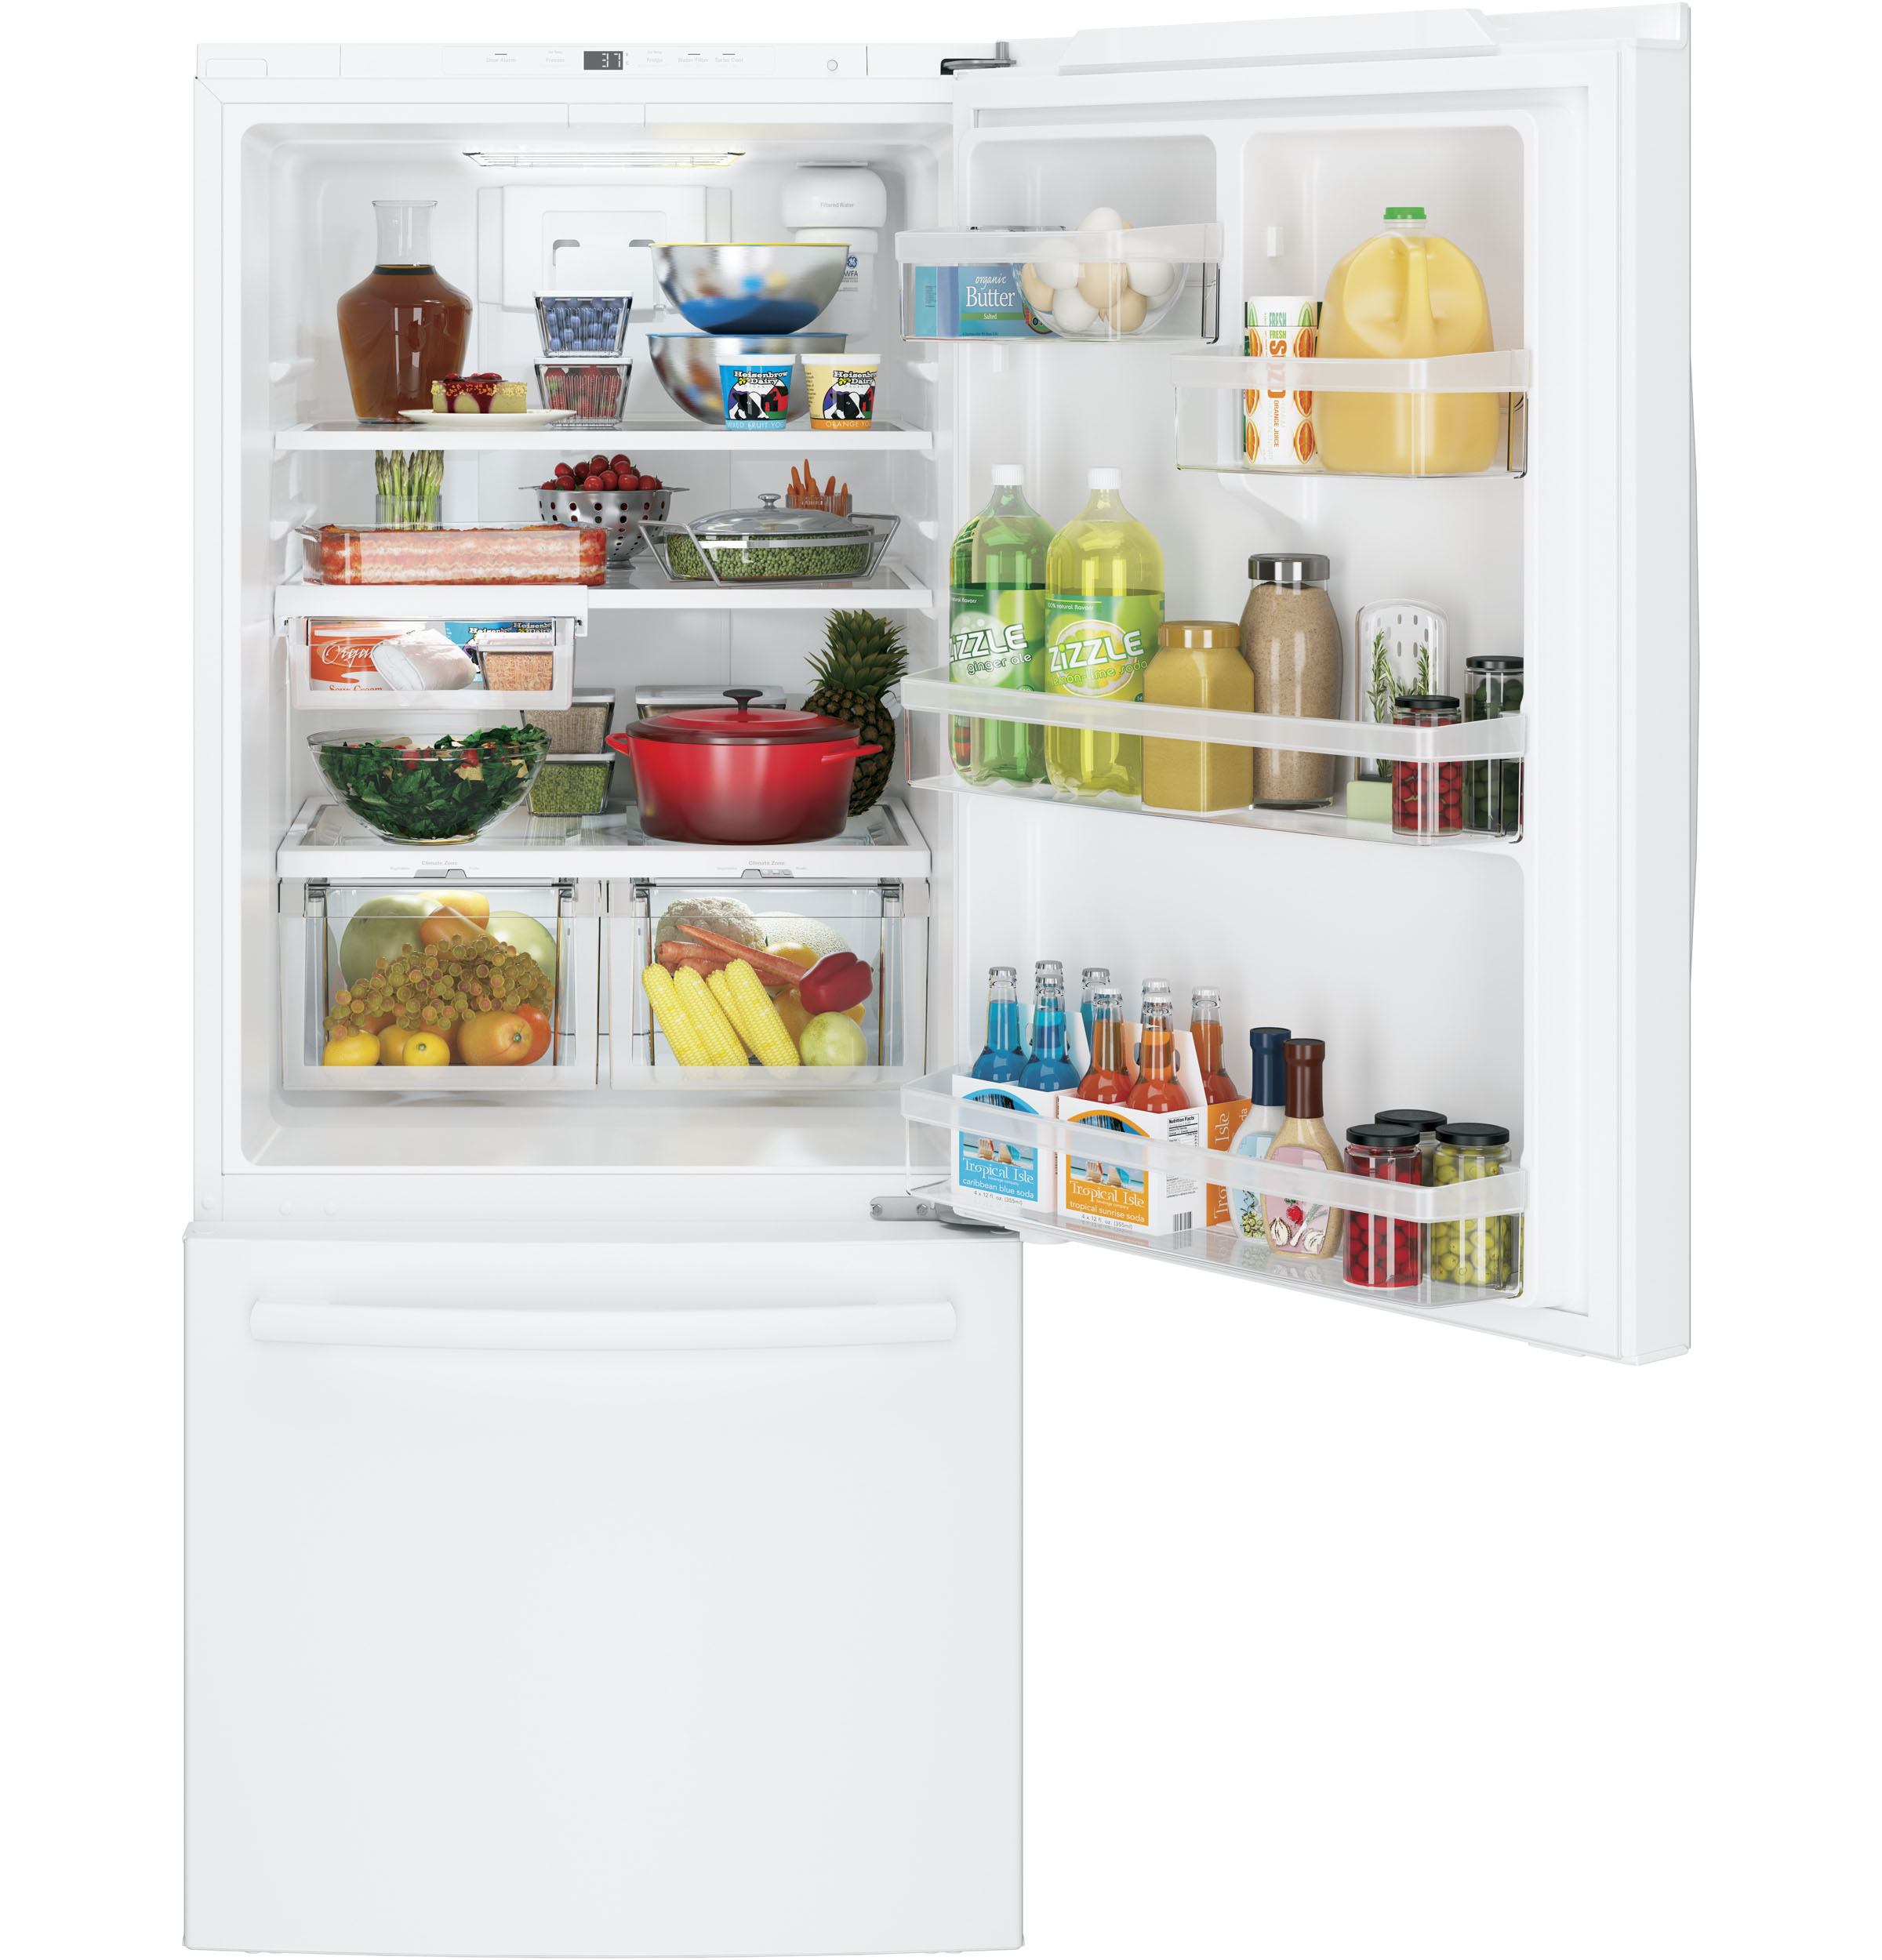 Model: GDE21EGKWW | GE GE® ENERGY STAR® 21.0 Cu. Ft. Bottom-Freezer Refrigerator